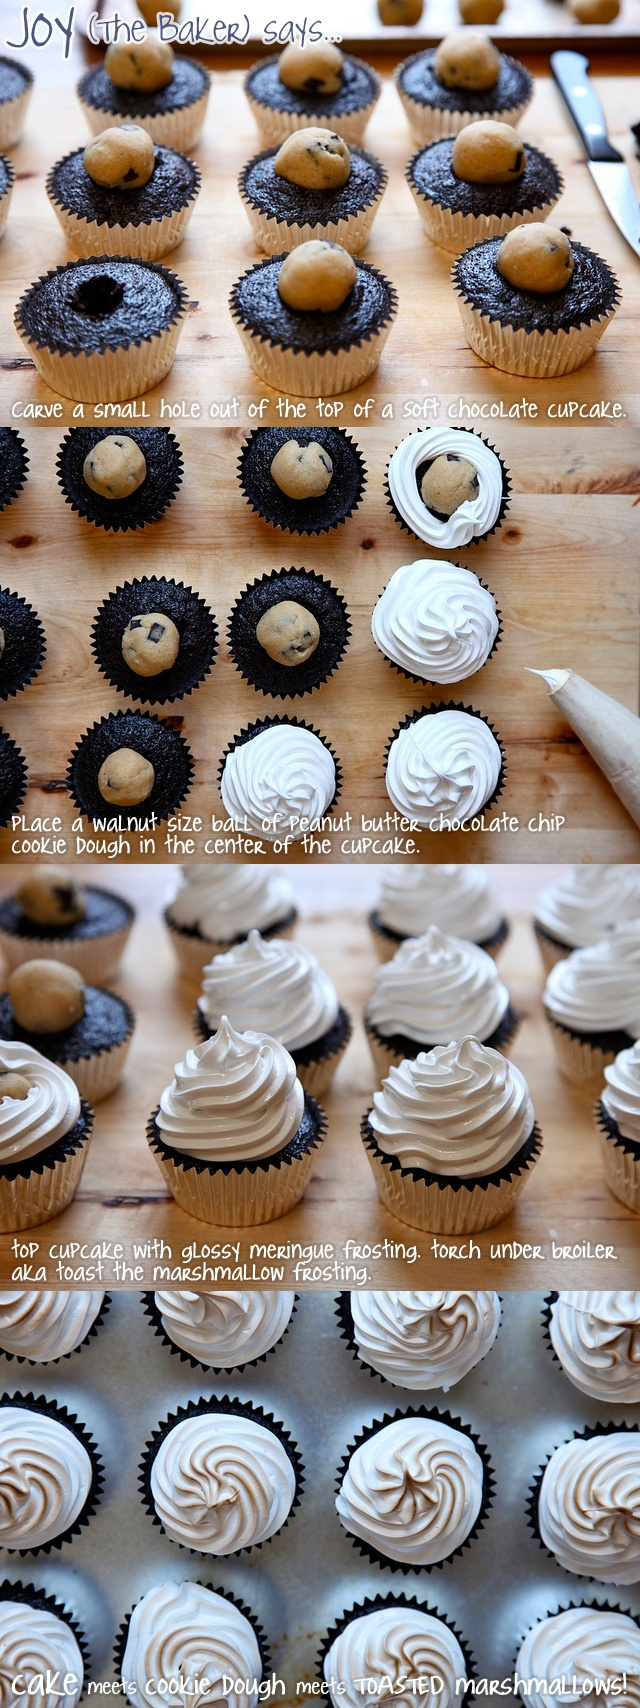 Best 25+ Marshmallow cupcakes ideas on Pinterest ...